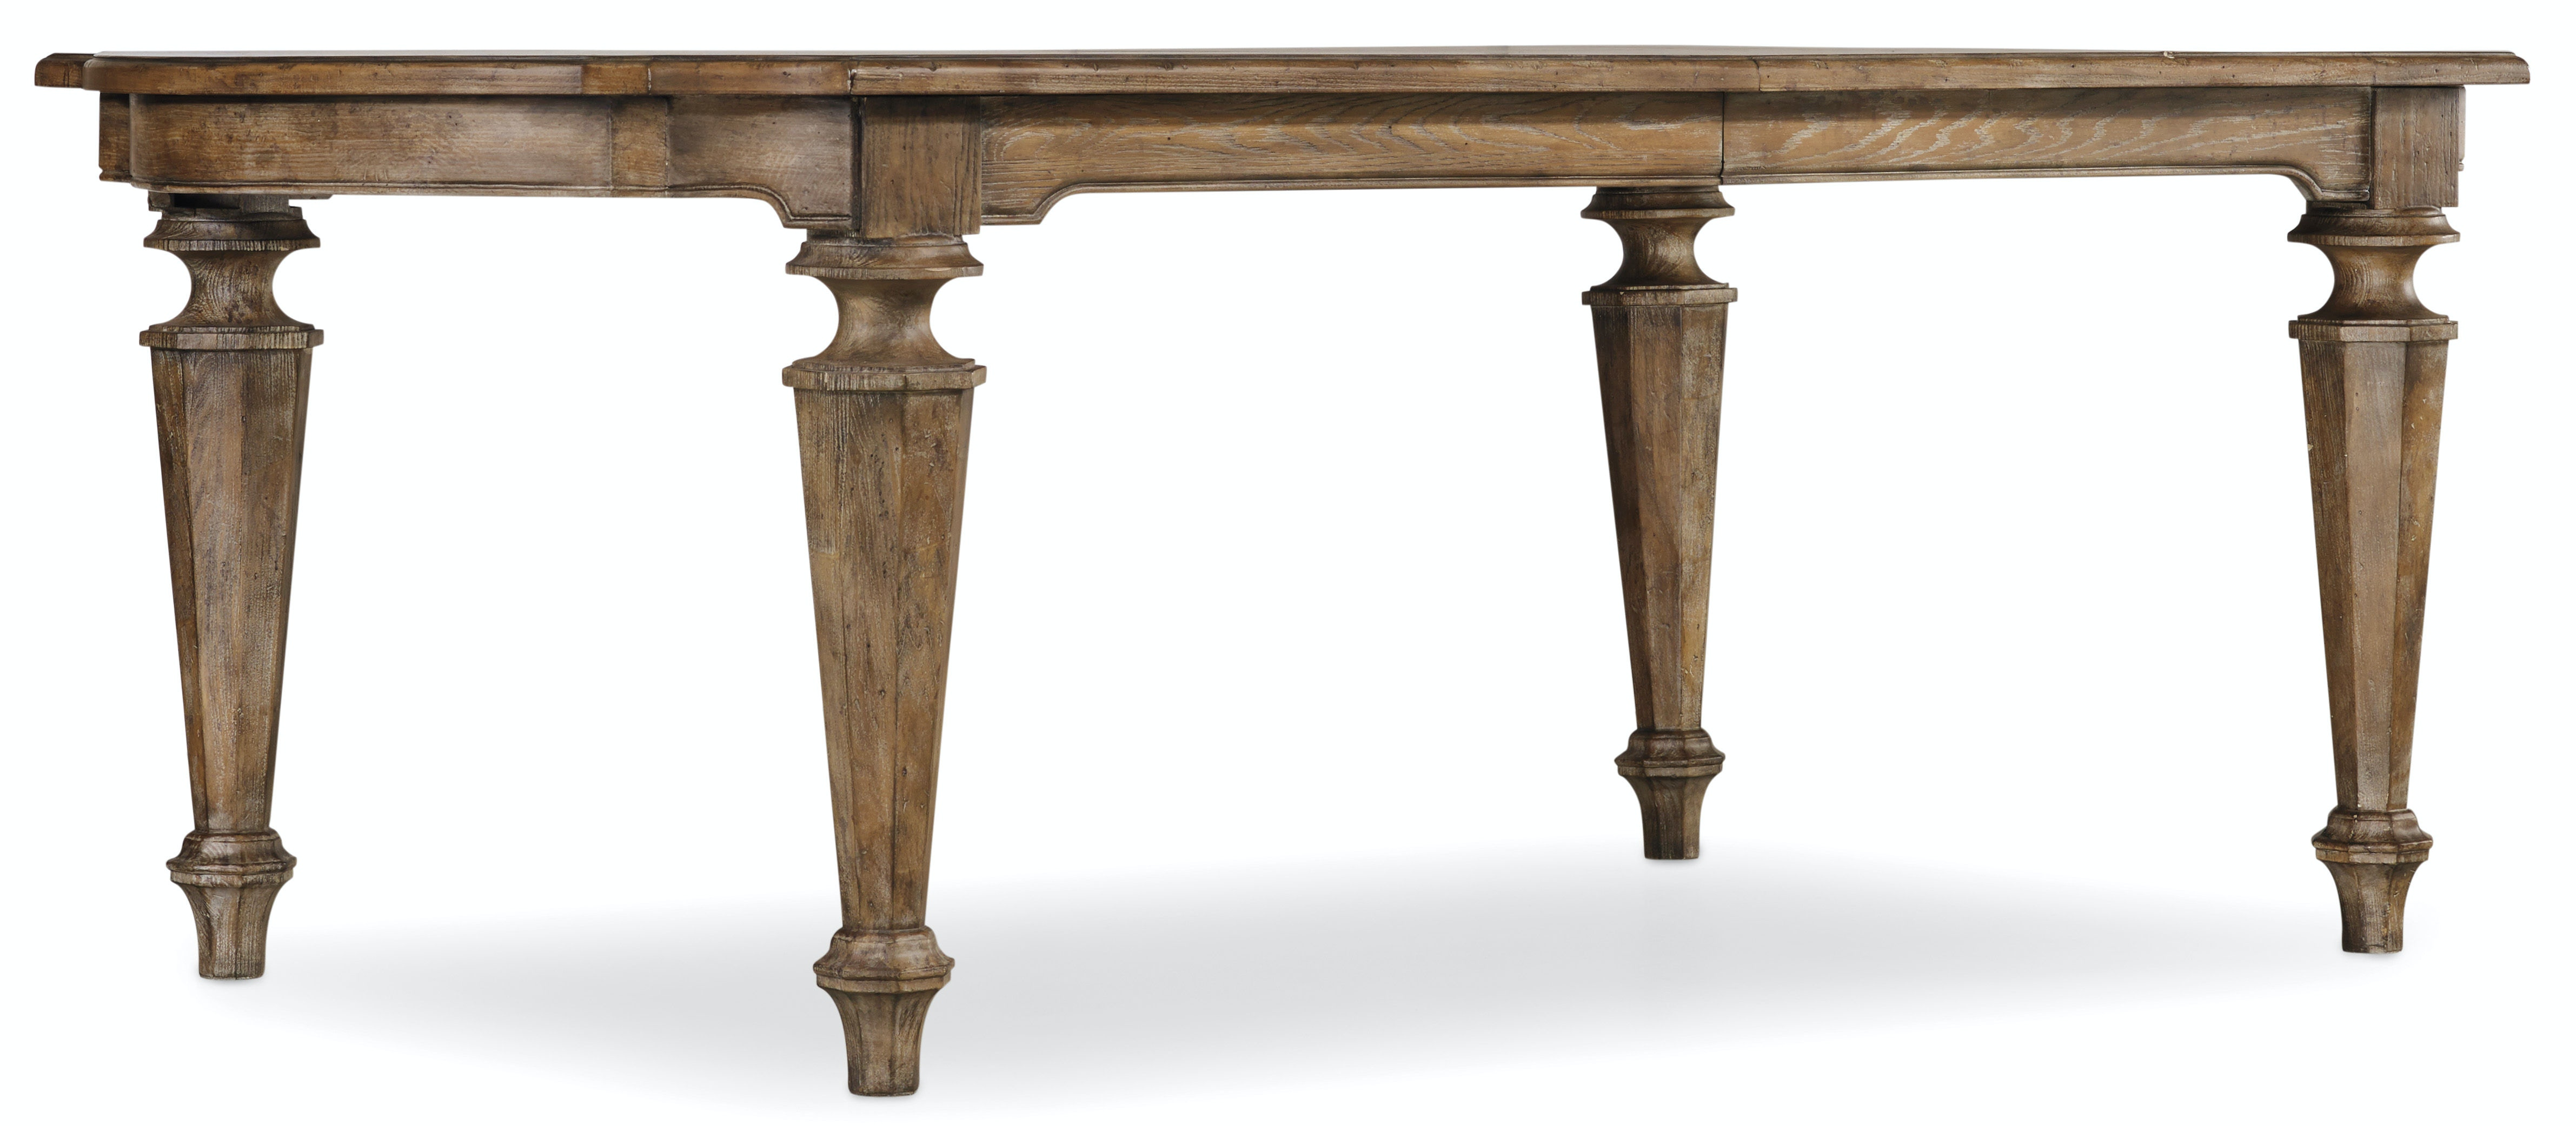 Hooker Furniture Solana Rectangle Dining Table W/2 18in Leaves 5291 75200